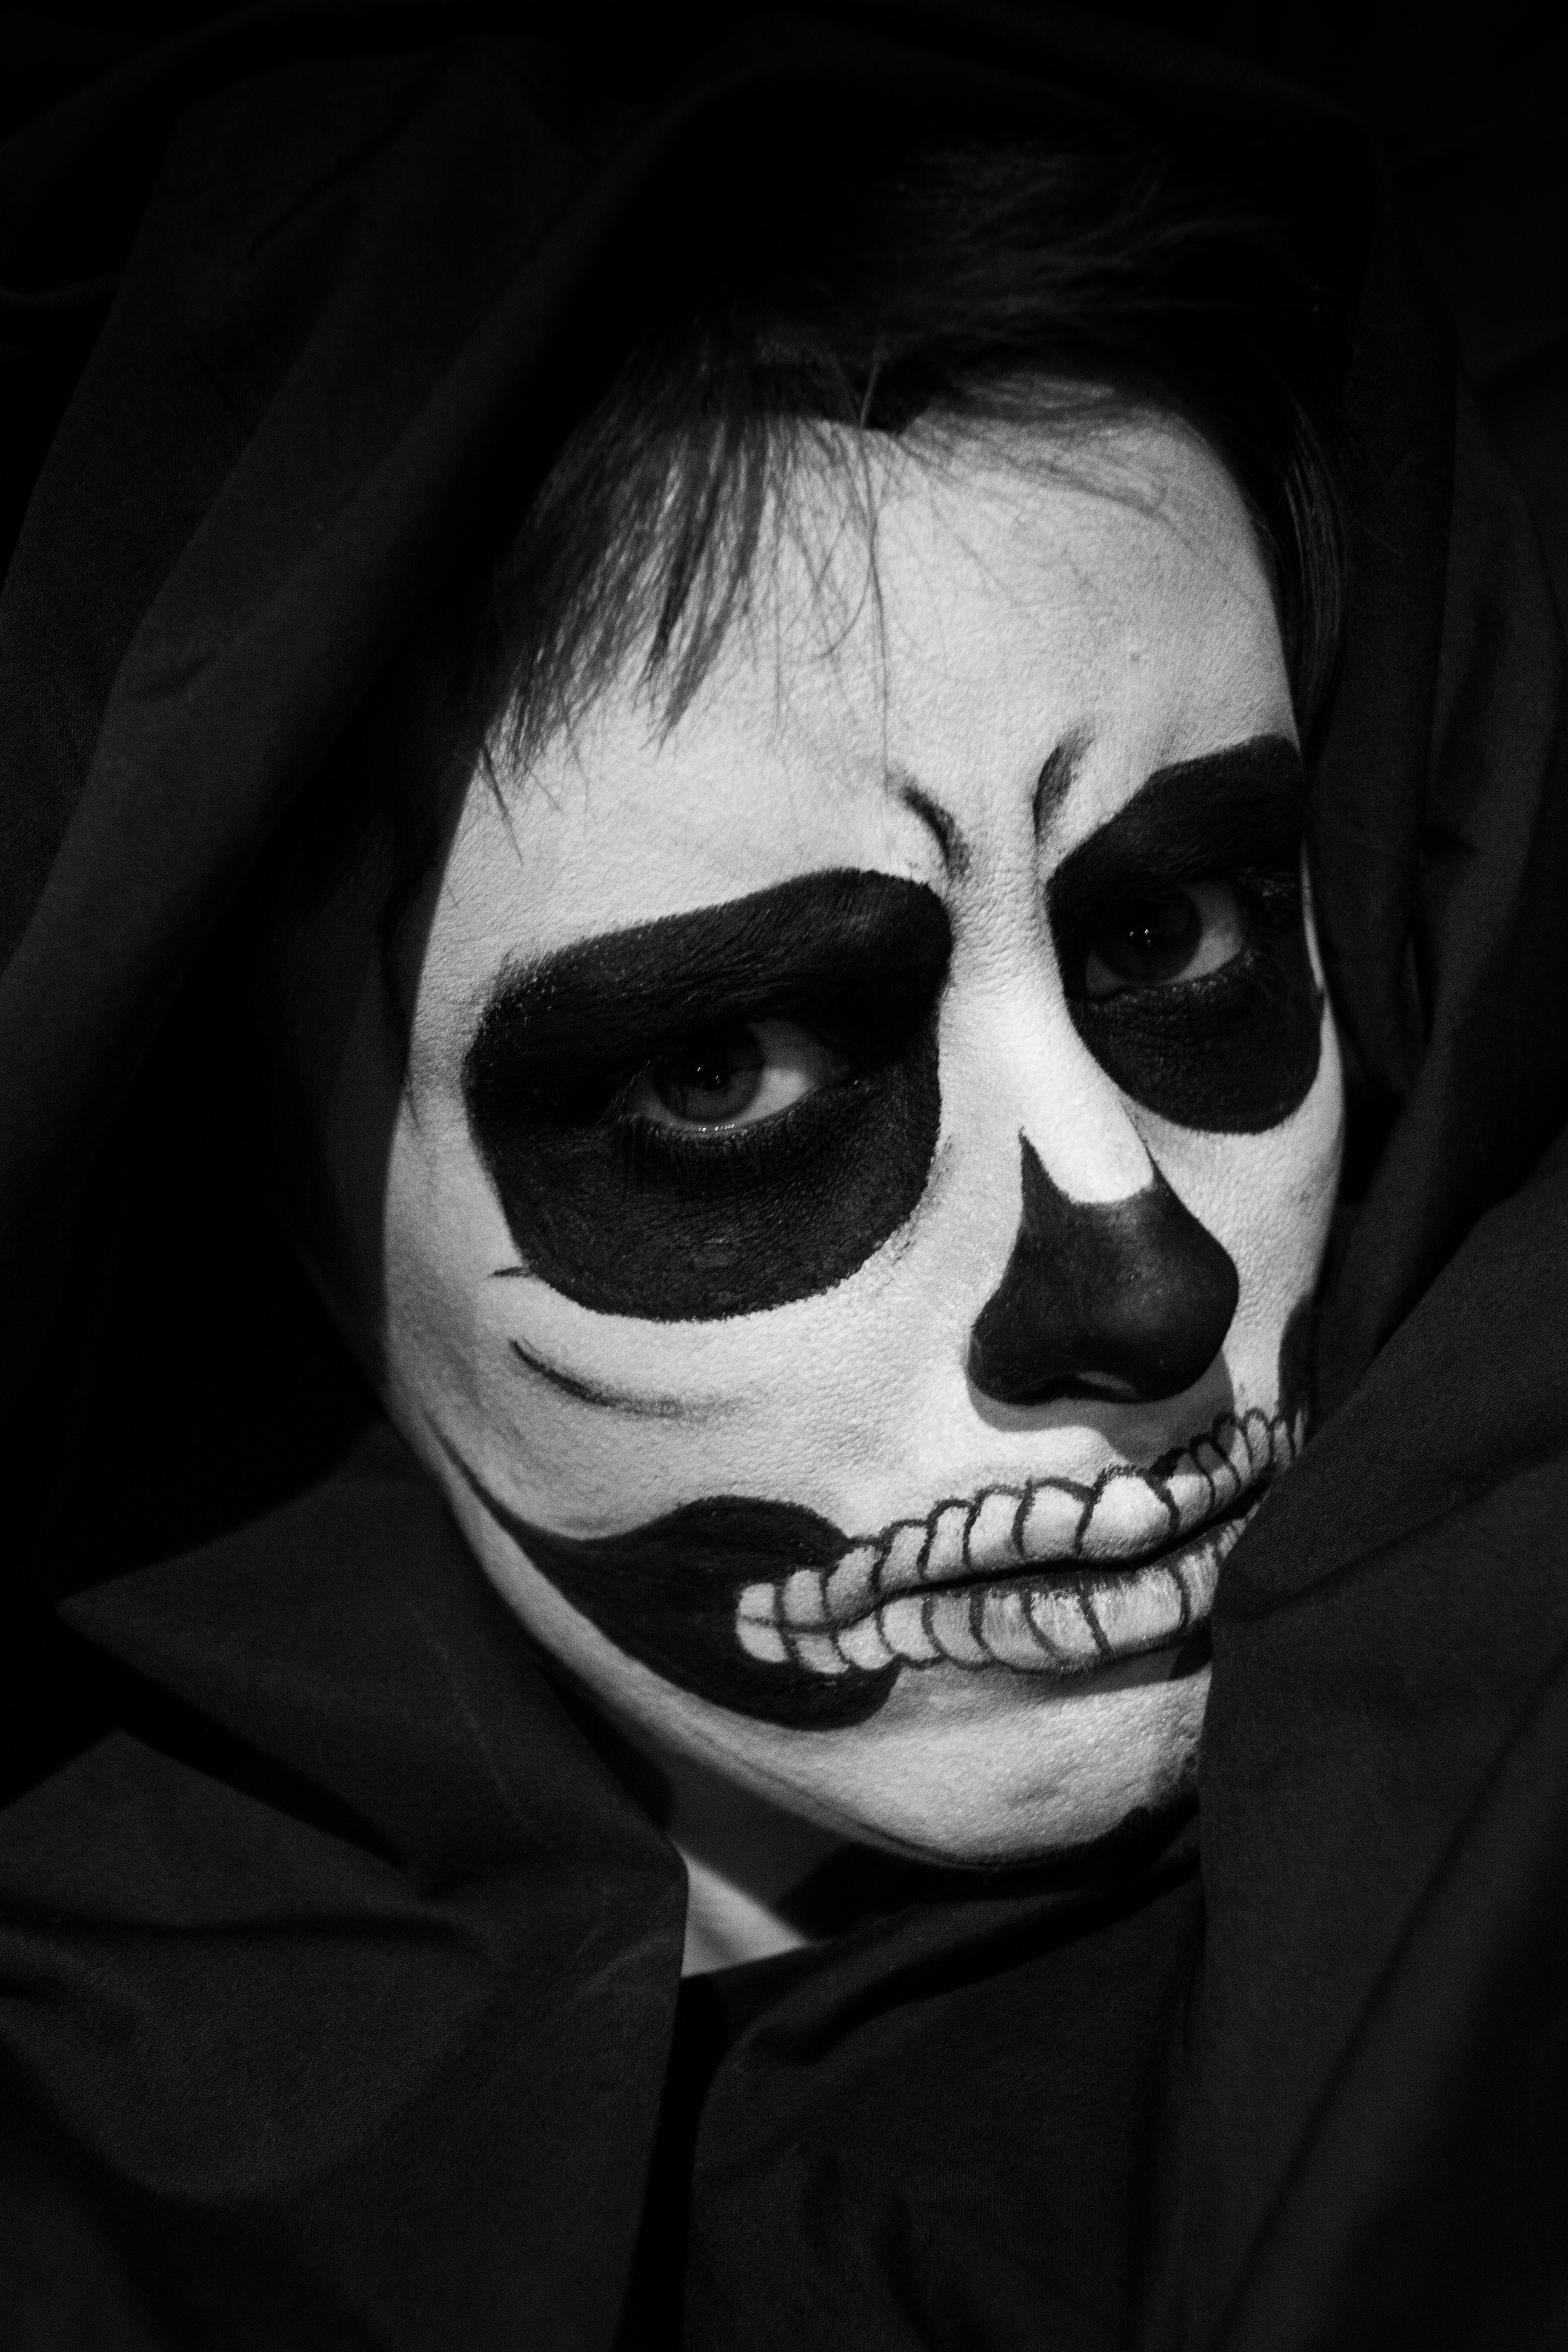 Black and white skull makeup continued skullsproject